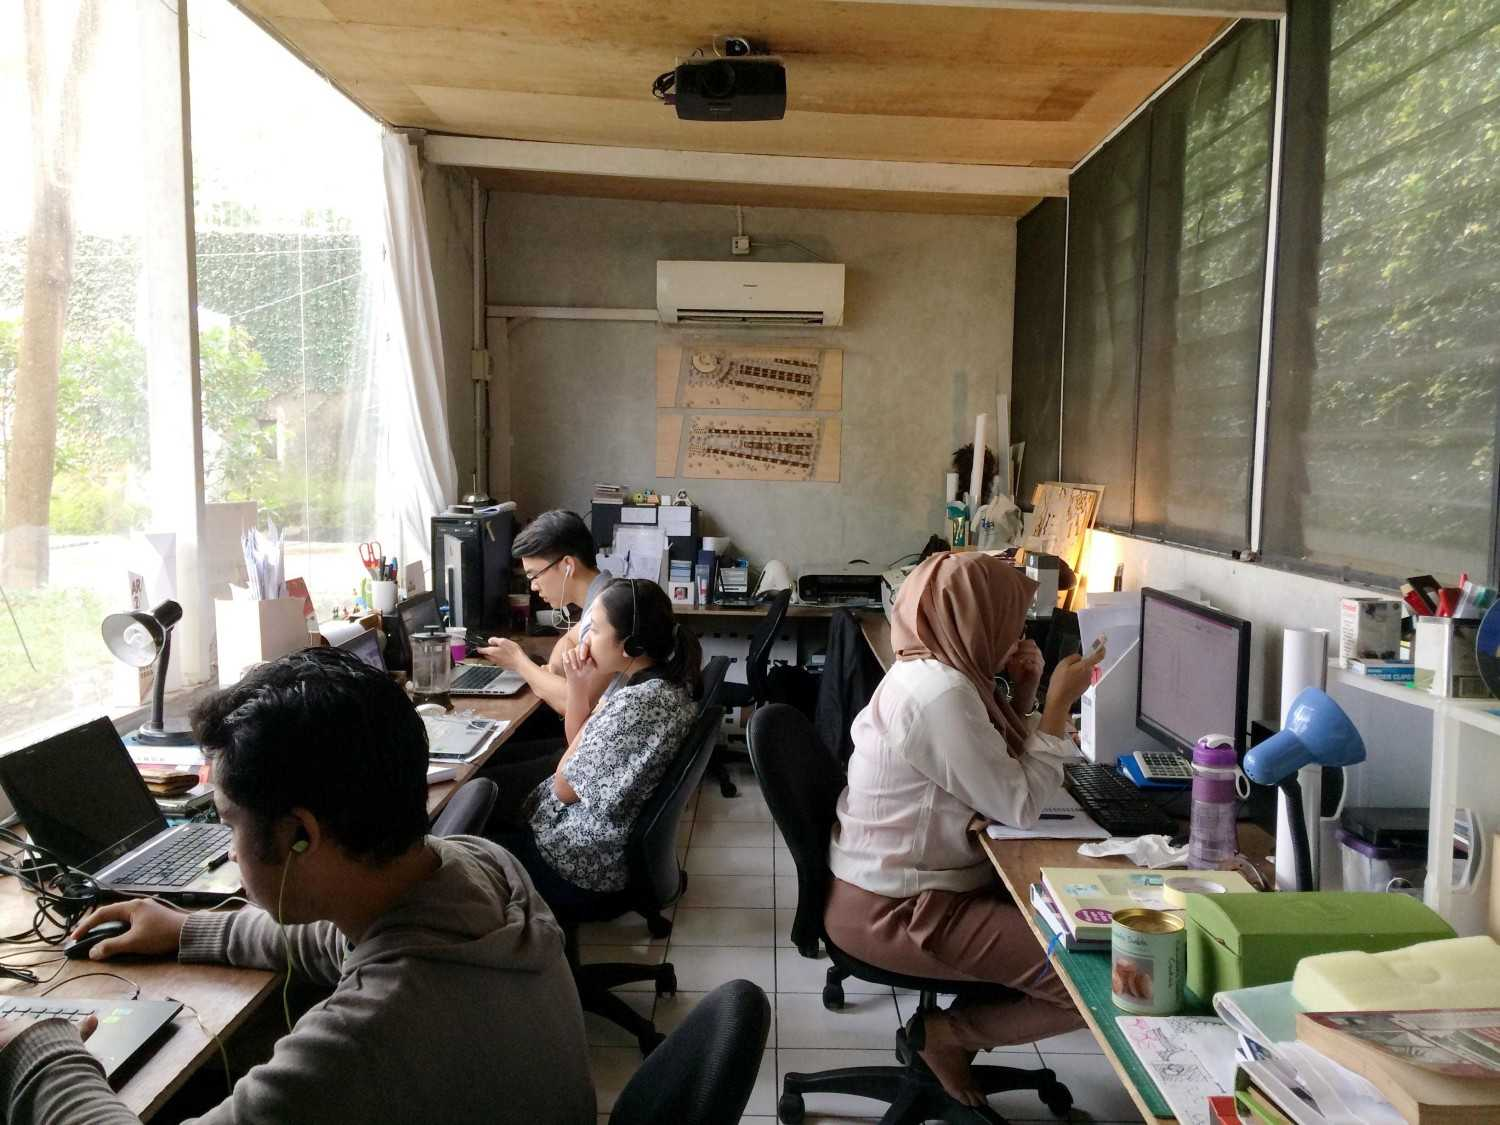 Monokroma Architect Monokroma Architect Office Lippo Karawaci Lippo Karawaci 9-Working-Space Modern 23591